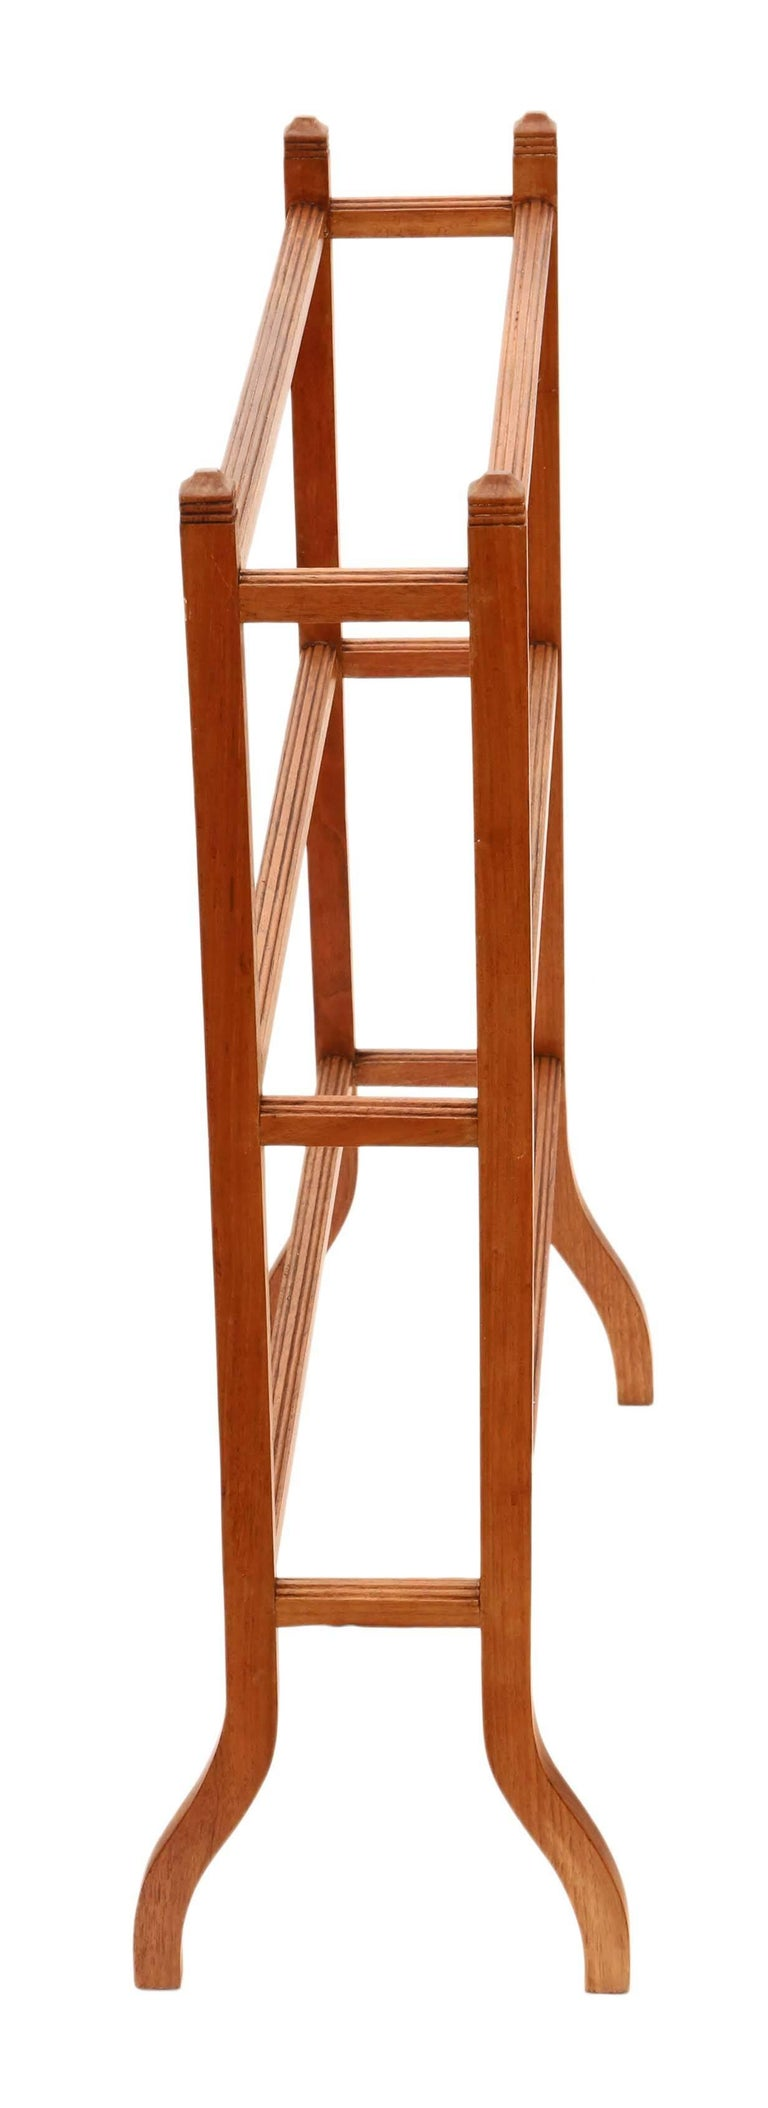 Antique Quality Victorian Circa 1900 Light Mahogany Towel Rail Stand For Sale At 1stdibs